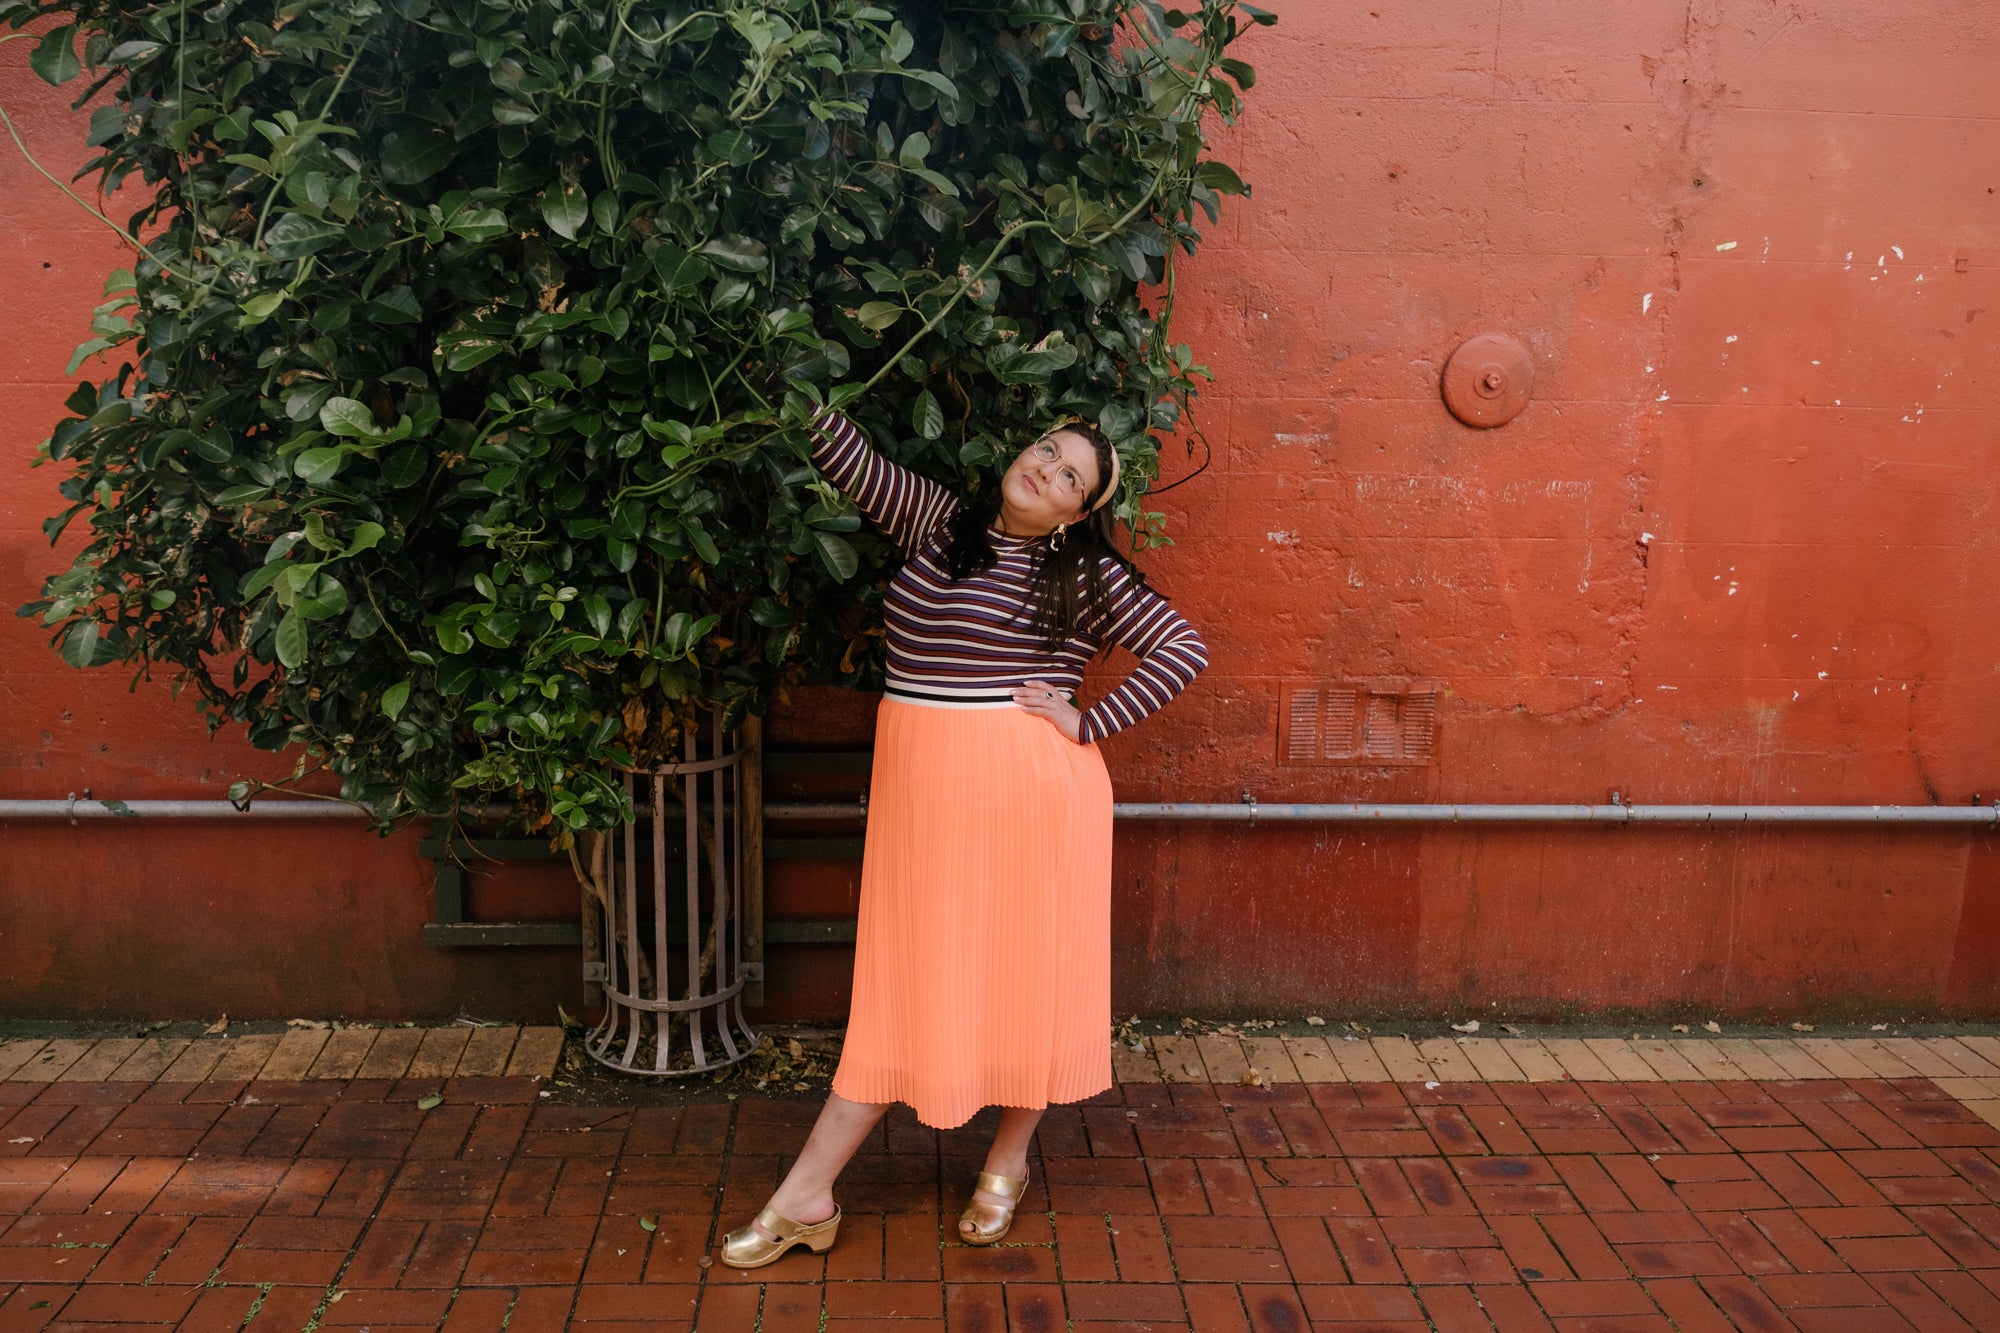 Sasha stands against a ochre wall with a vine growing up it. She has one arm reaching to the sky, and looks fabulous.